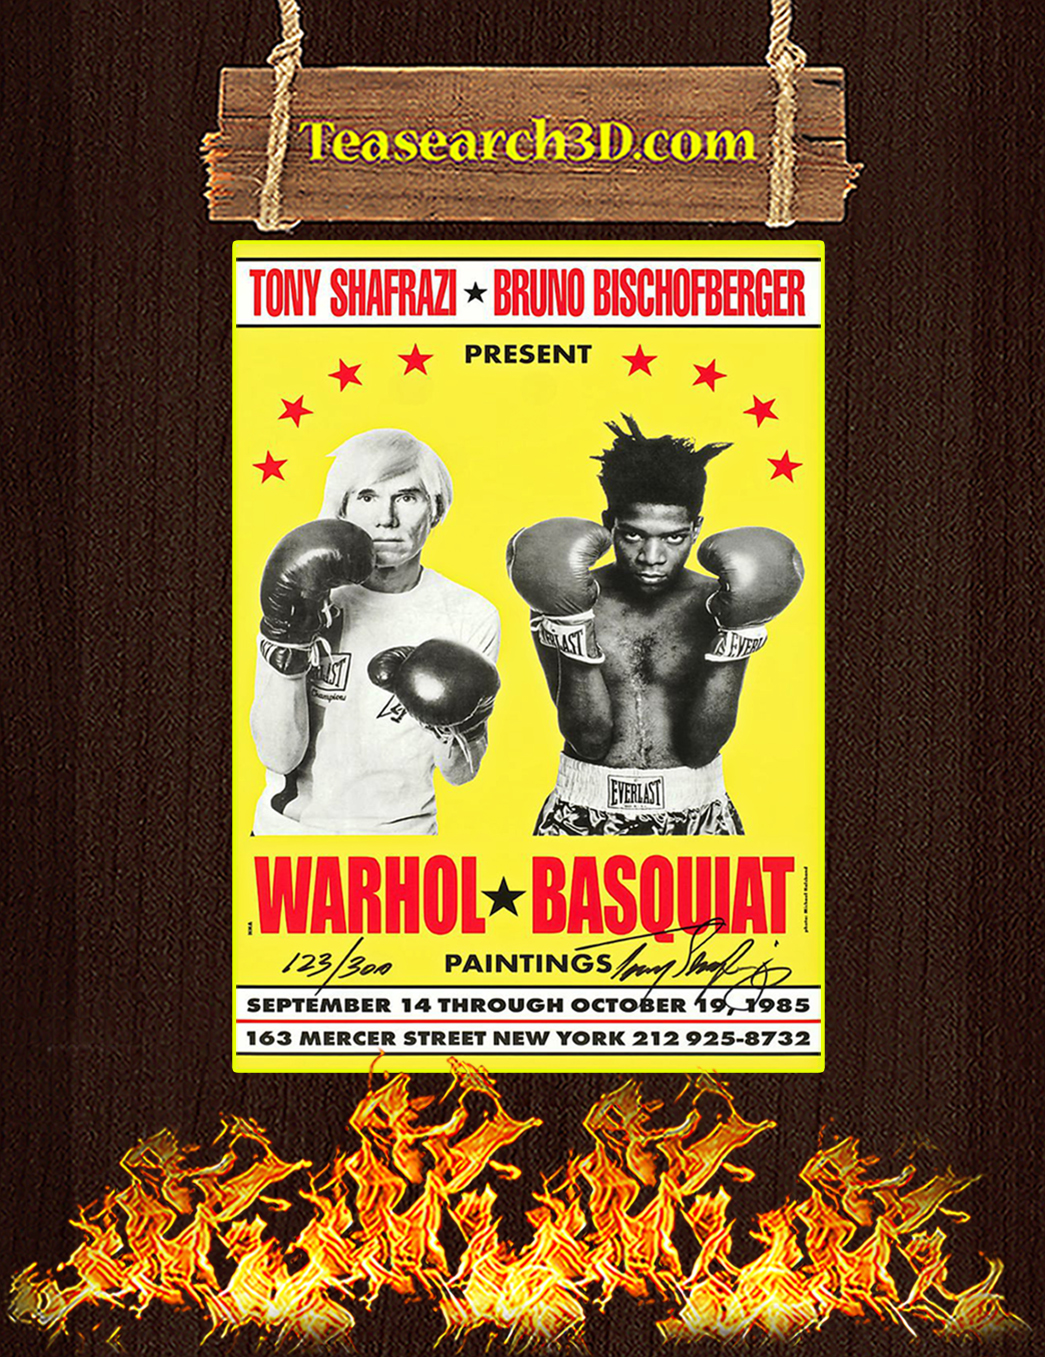 Warhol and Basquiat paintings poster A1